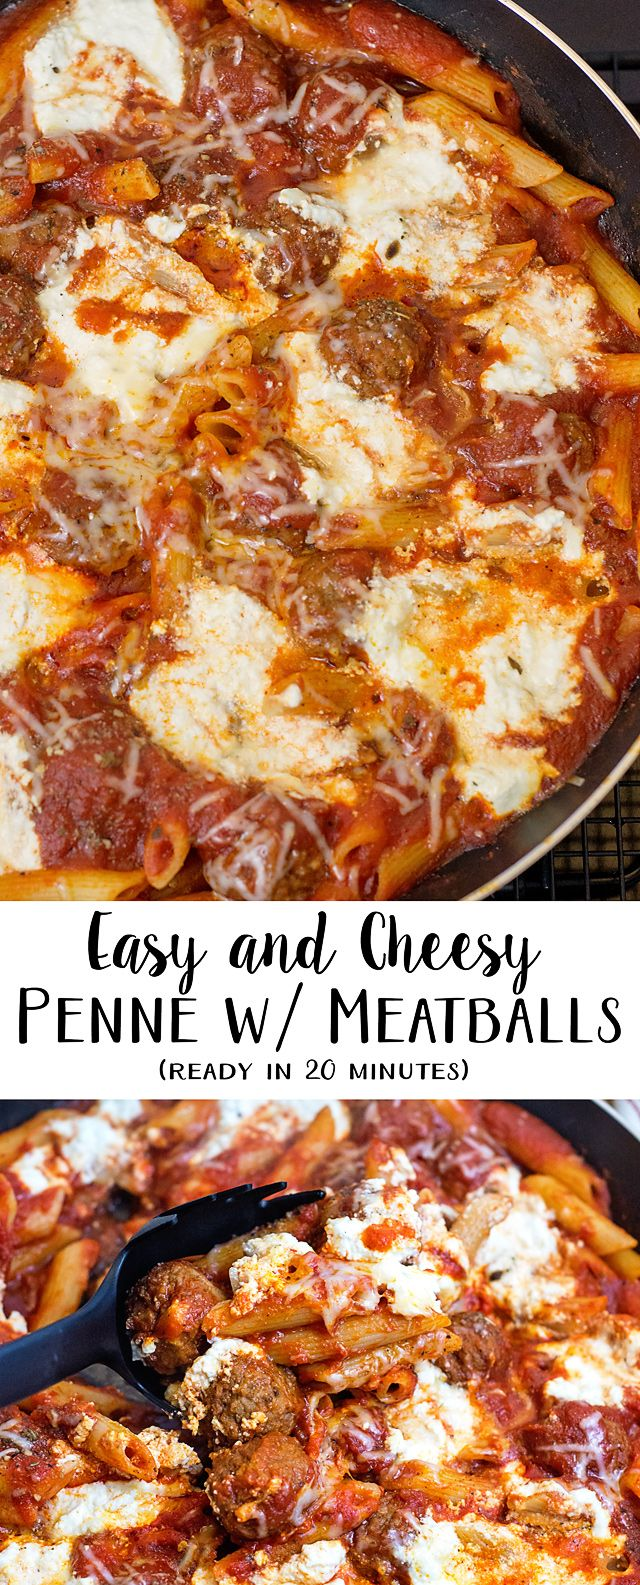 Cheesy Penne with Meatballs Recipe (20 Minute Meal)